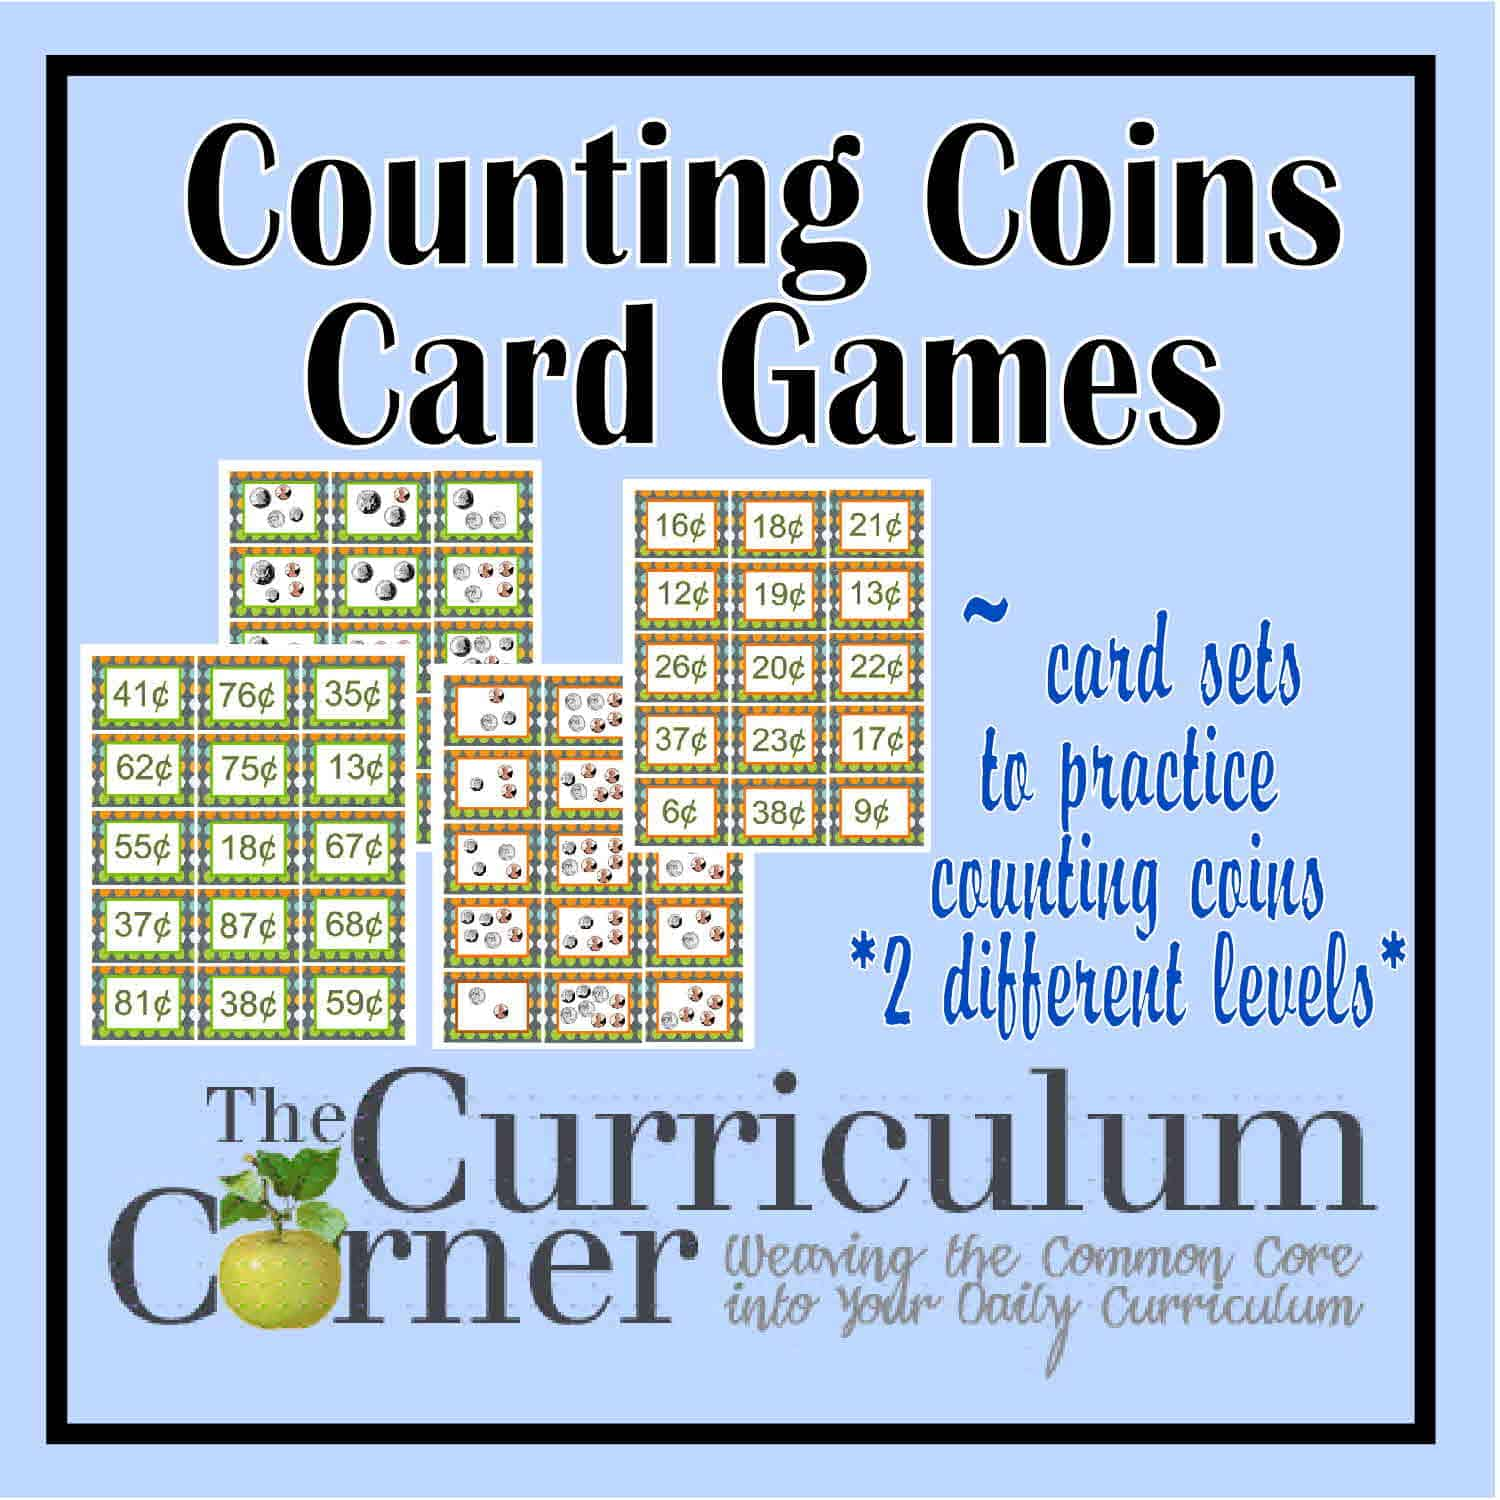 Counting Coins Card Games